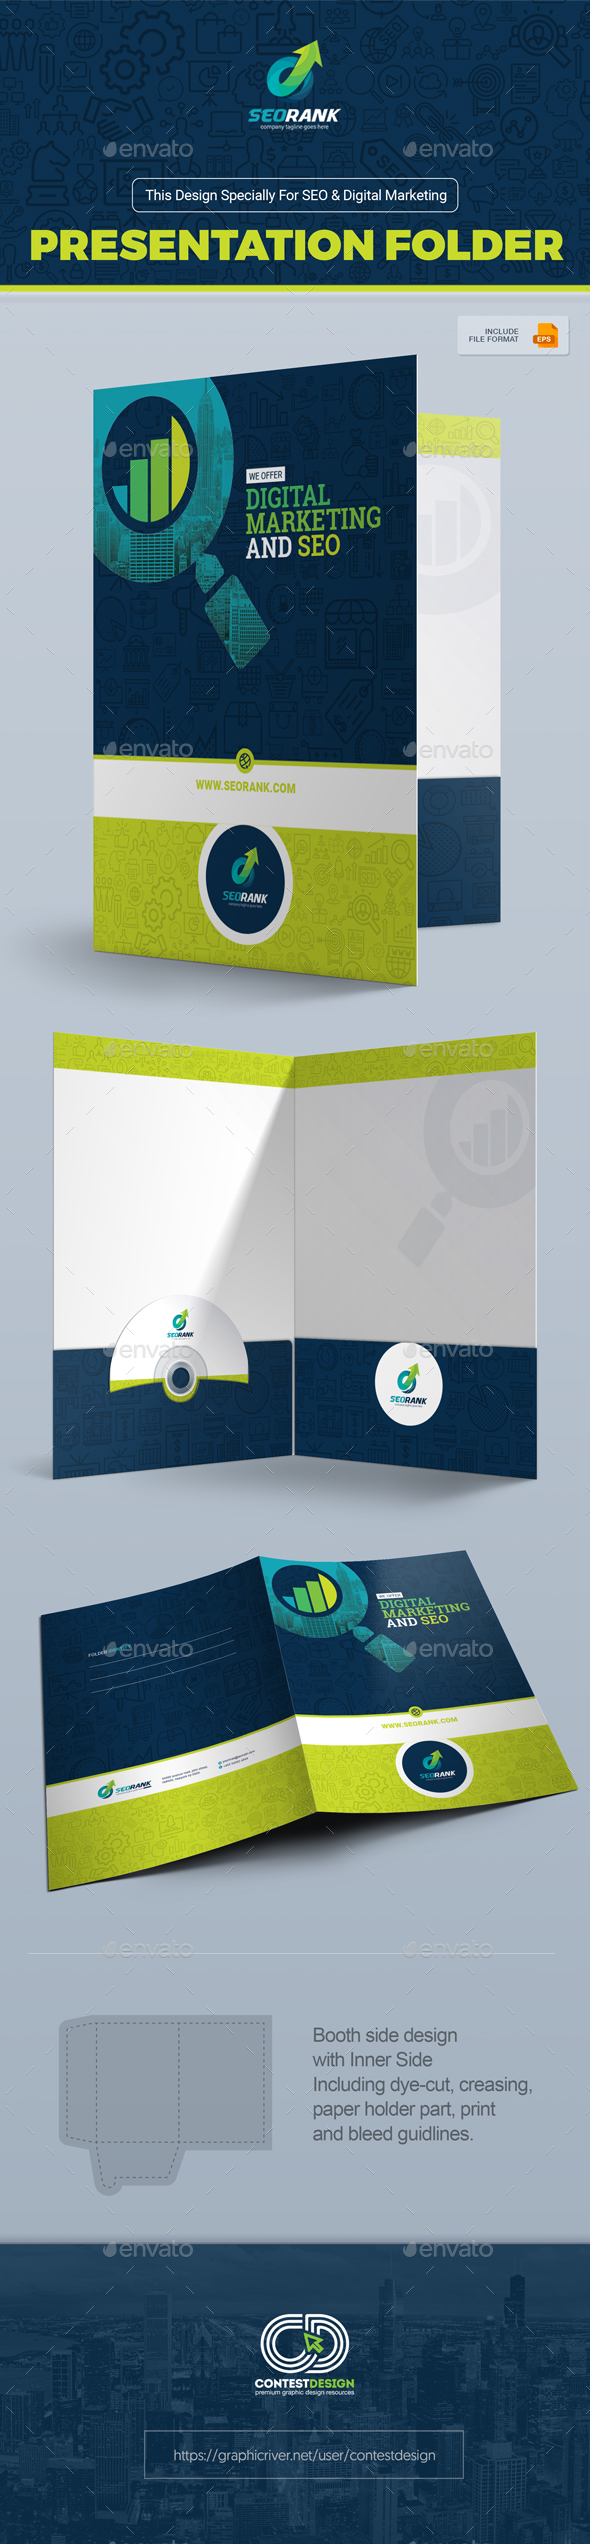 presentation folder template for seo (search engine optimization, Presentation templates